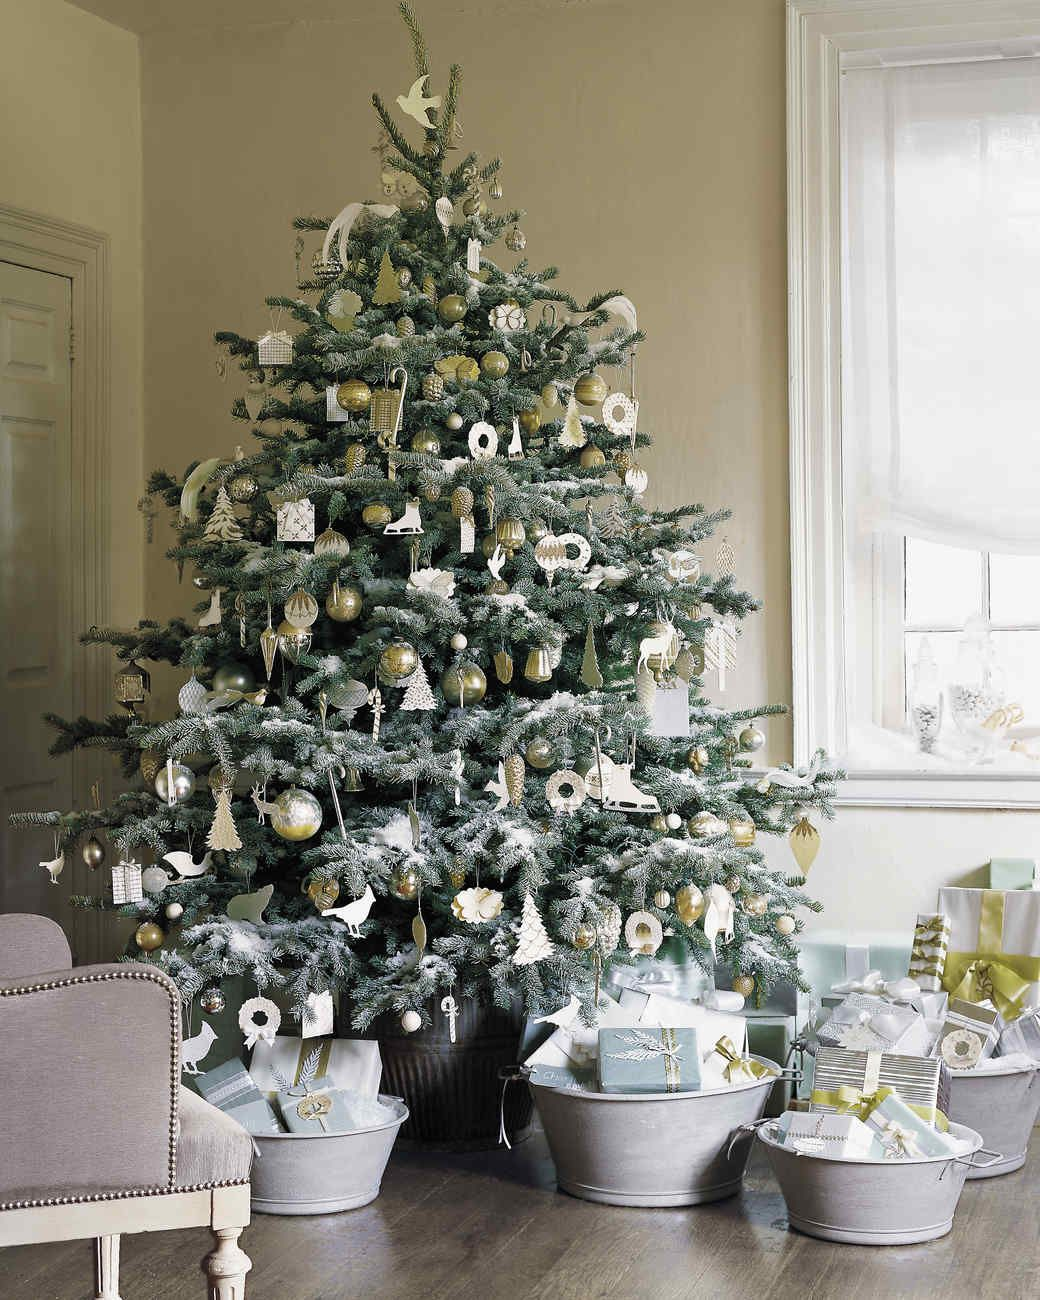 Shimmery Christmas Tree Good Design Doesn T Date Baronessa Home Furnishings And Access Gold Christmas Decorations Silver Christmas Tree Cool Christmas Trees